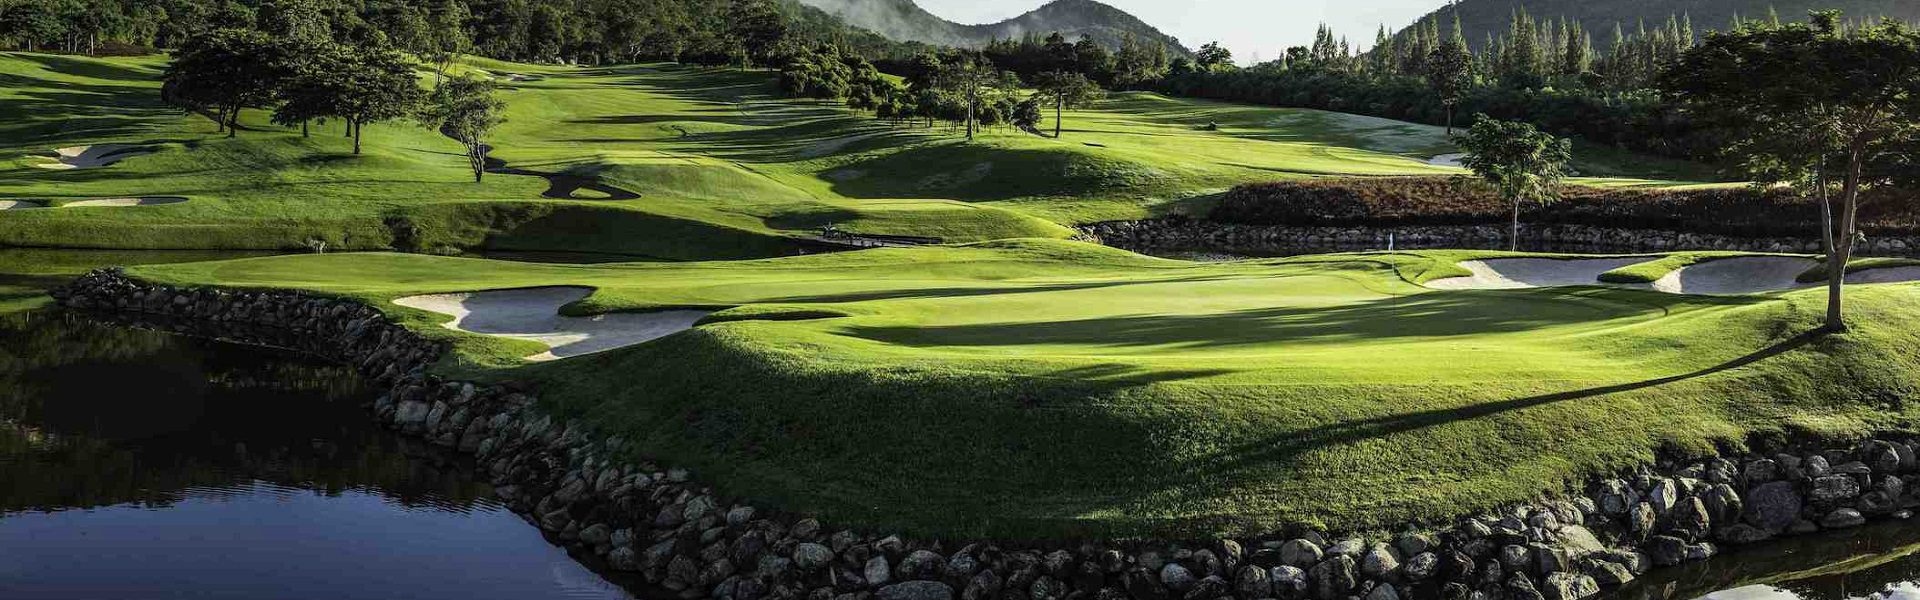 The Latest Review on the Golf Courses in Phuket (Feb 2020)